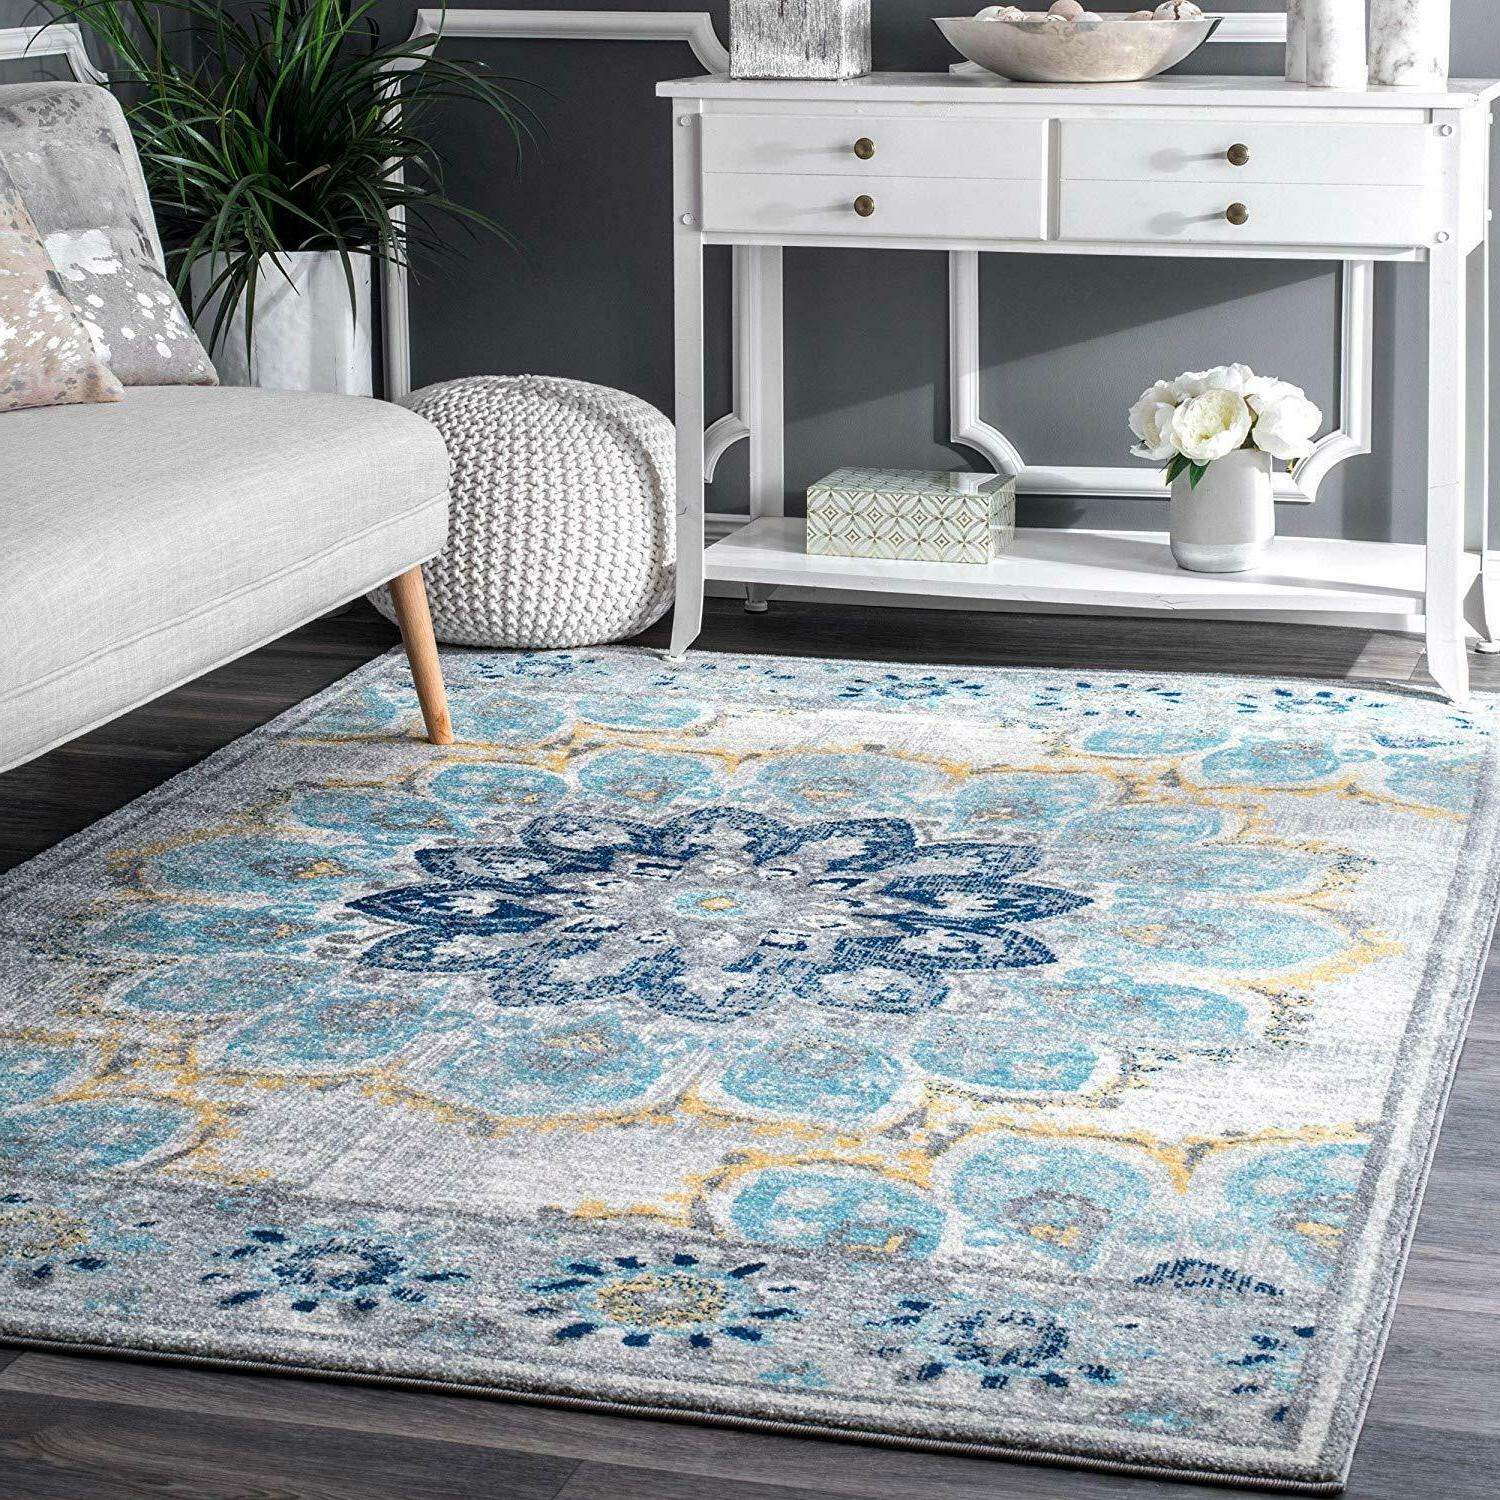 "Carpet Area Rug 5' x 7' 5"" Shabby Chic Distressed Colorful F"